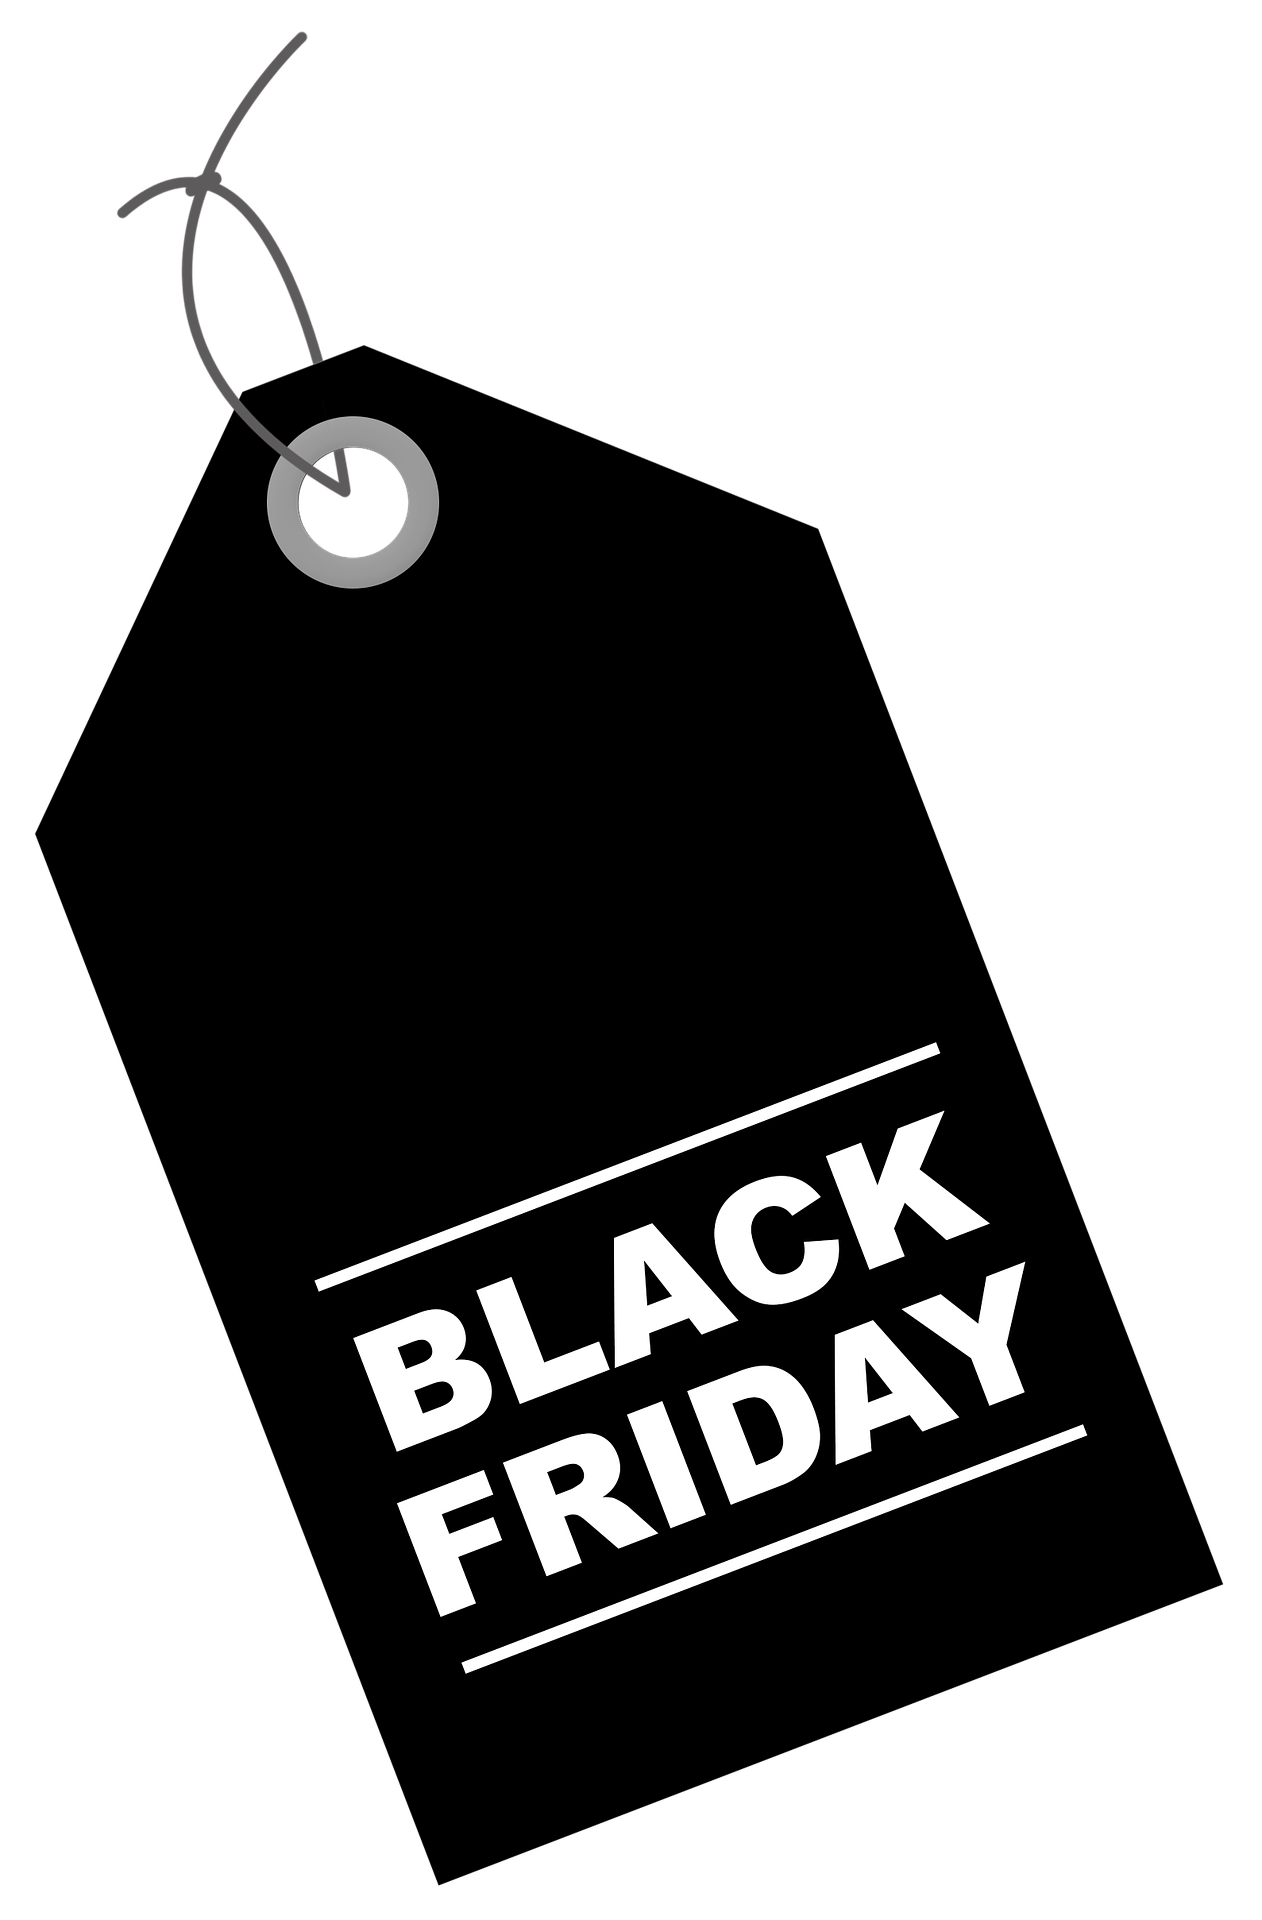 96db03deee8 TGINF- Thank God Its Not (Black) Friday - Blog | Procurious